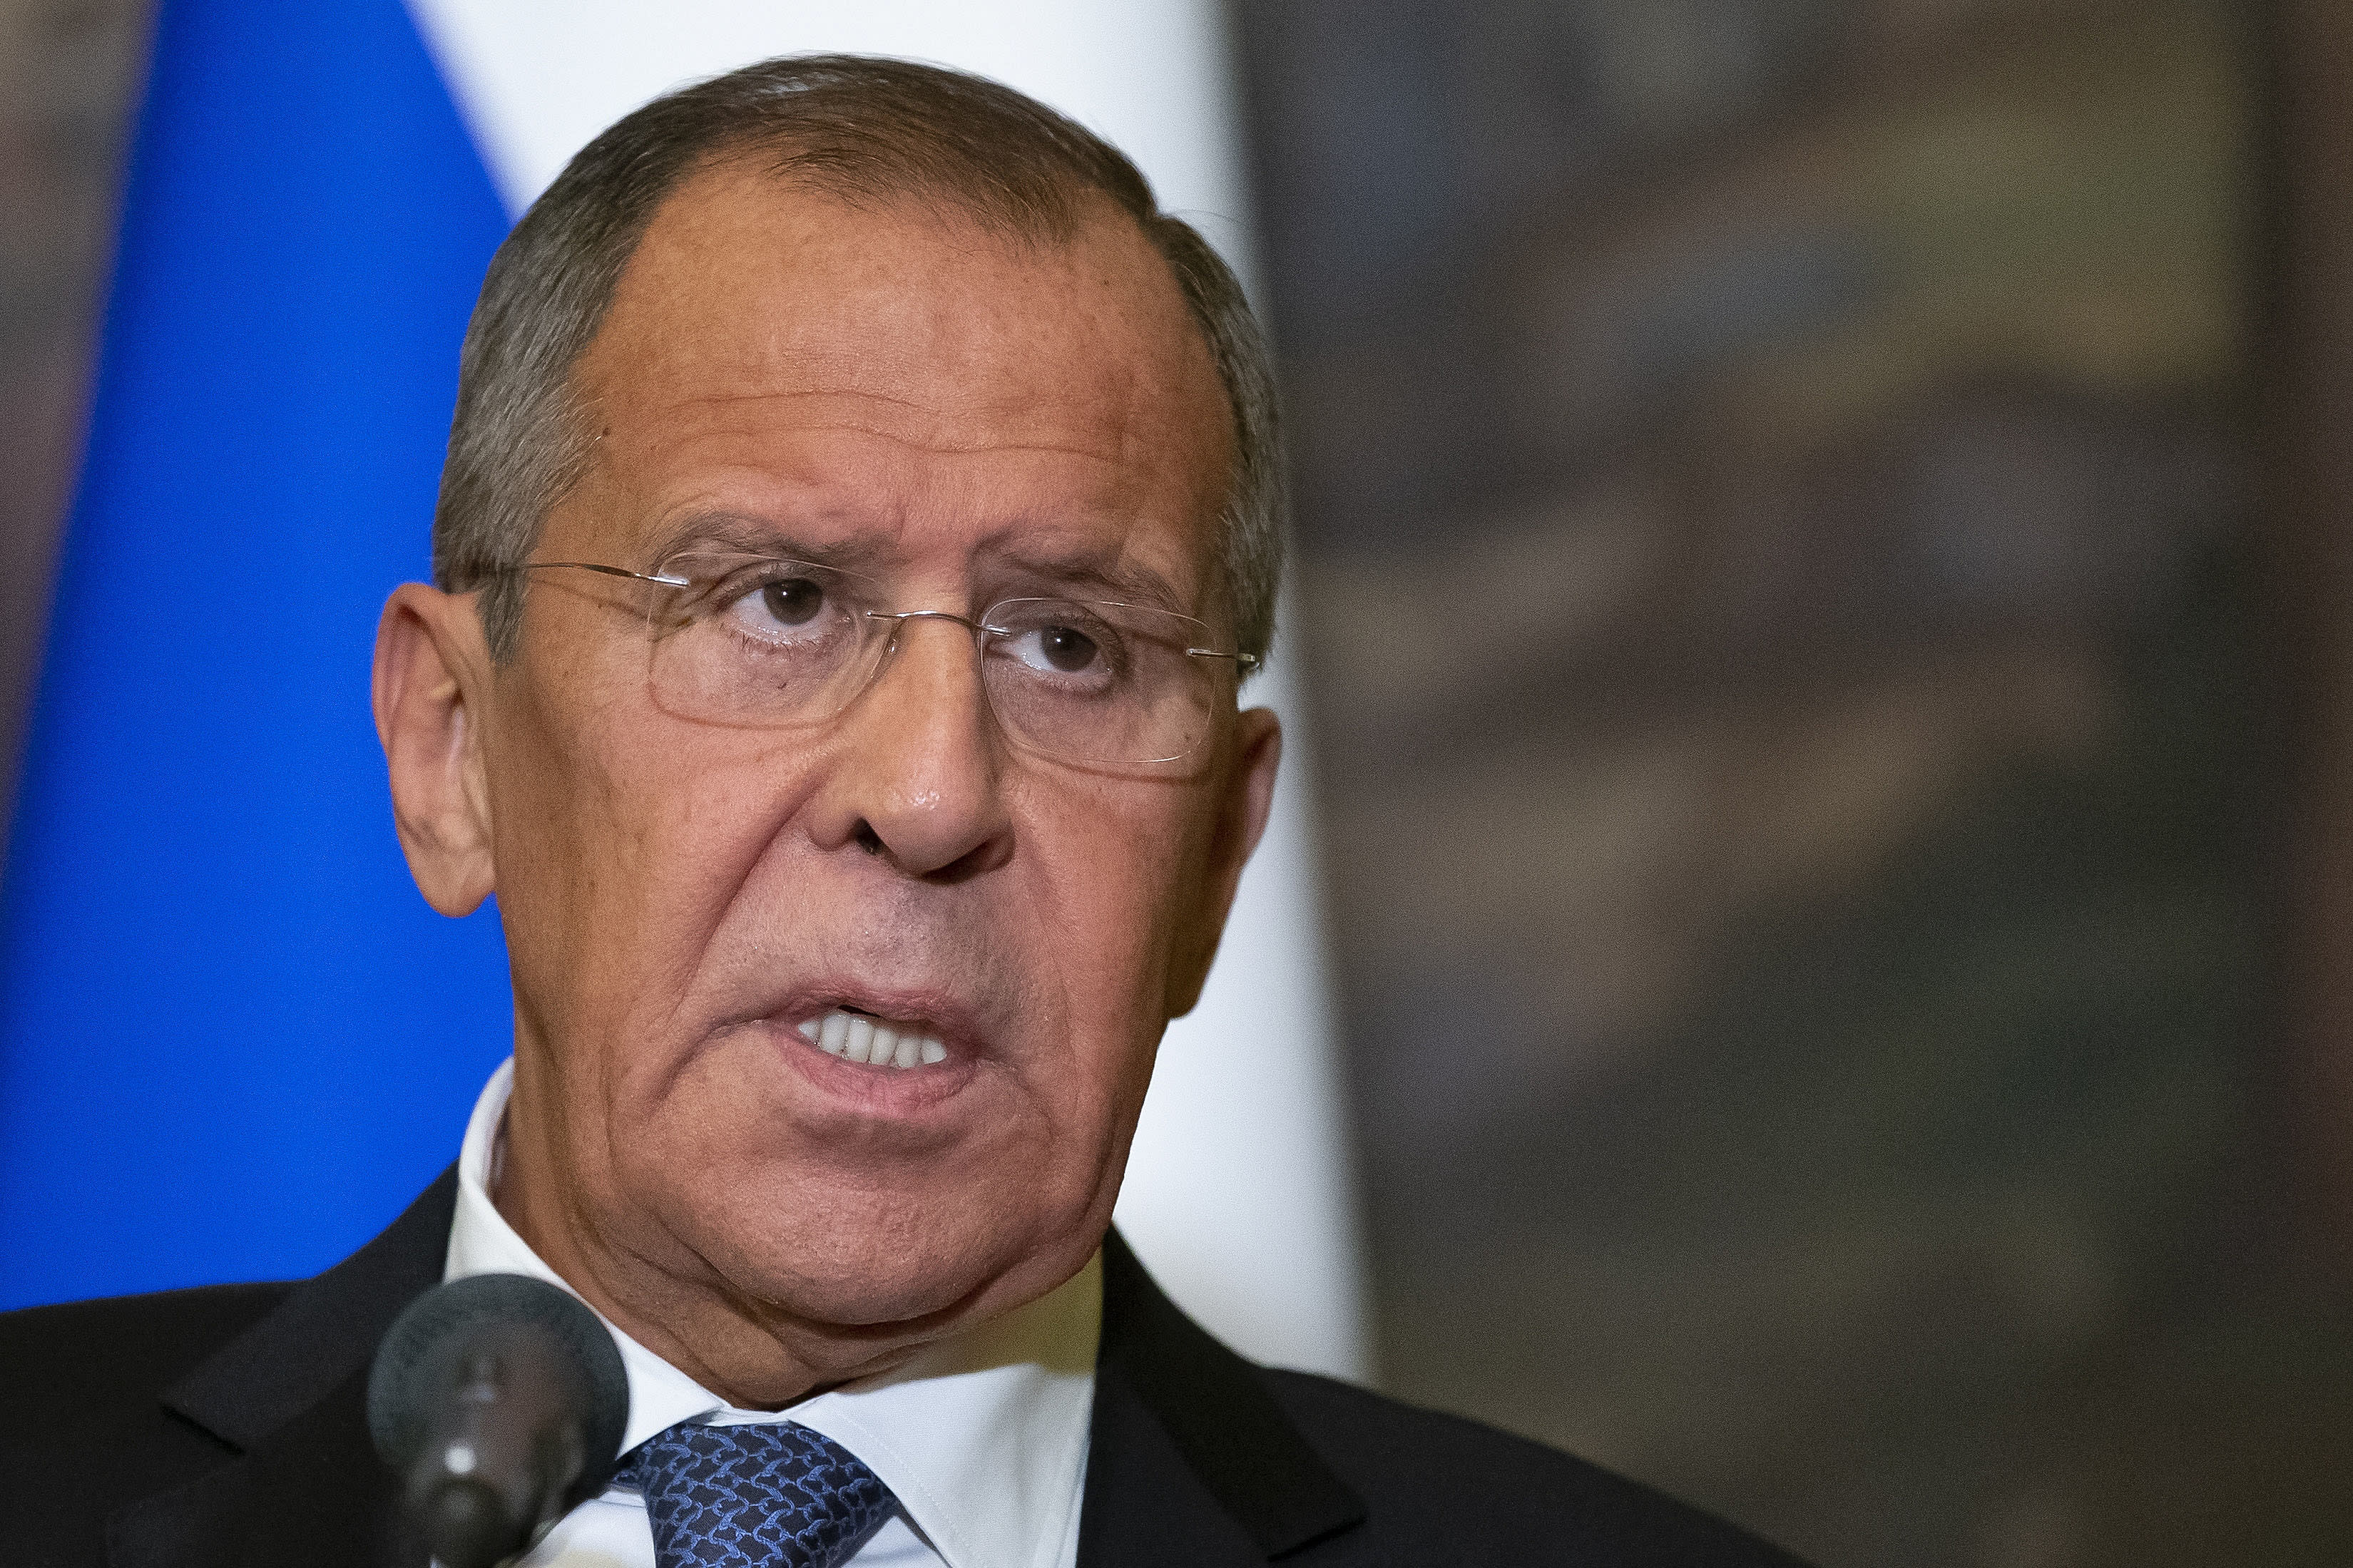 Russian Foreign Minister Sergey Lavrov speaks to the media during a joint news conference with Syrian Foreign Minister Walid Muallem following their talks in Moscow, Russia, Thursday, Aug. 30, 2018. Muallem's Moscow visit comes as Moscow and Damascus are increasingly worried about a possible airstrike on government positions in Syria. (AP Photo/Alexander Zemlianichenko)